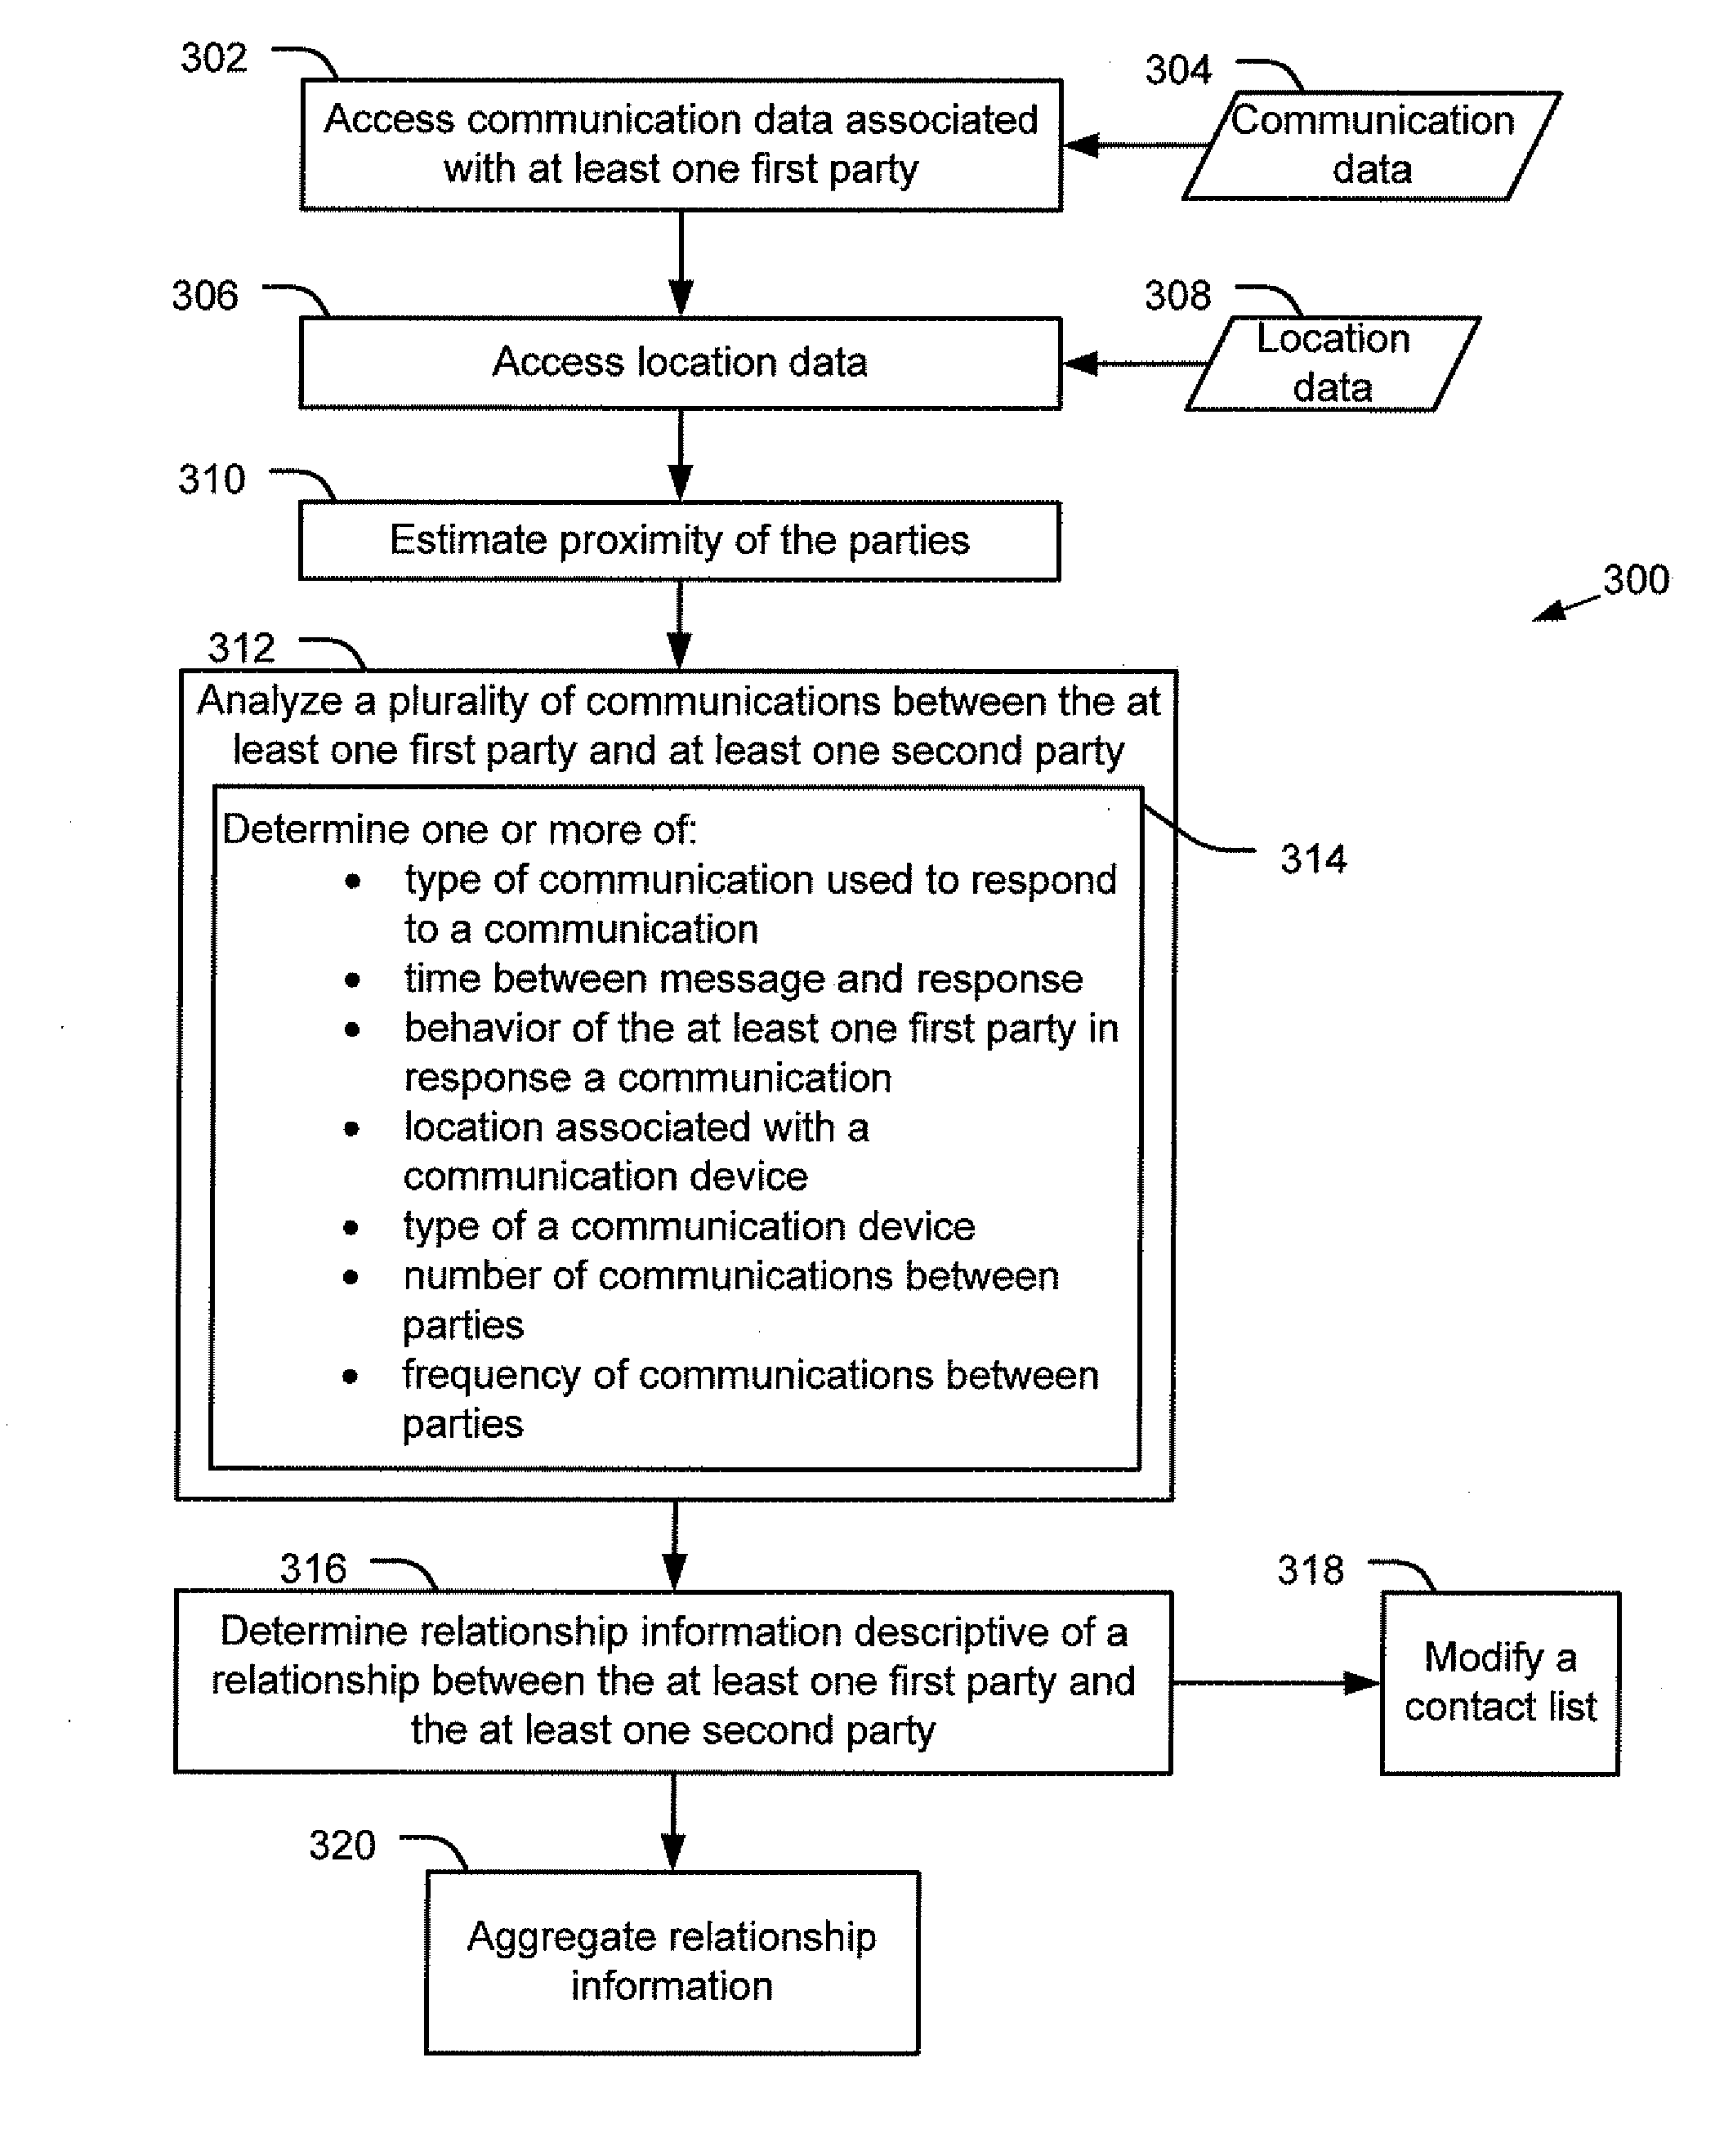 System and Method of Determining Relationship Information  - US-2009138460-A1